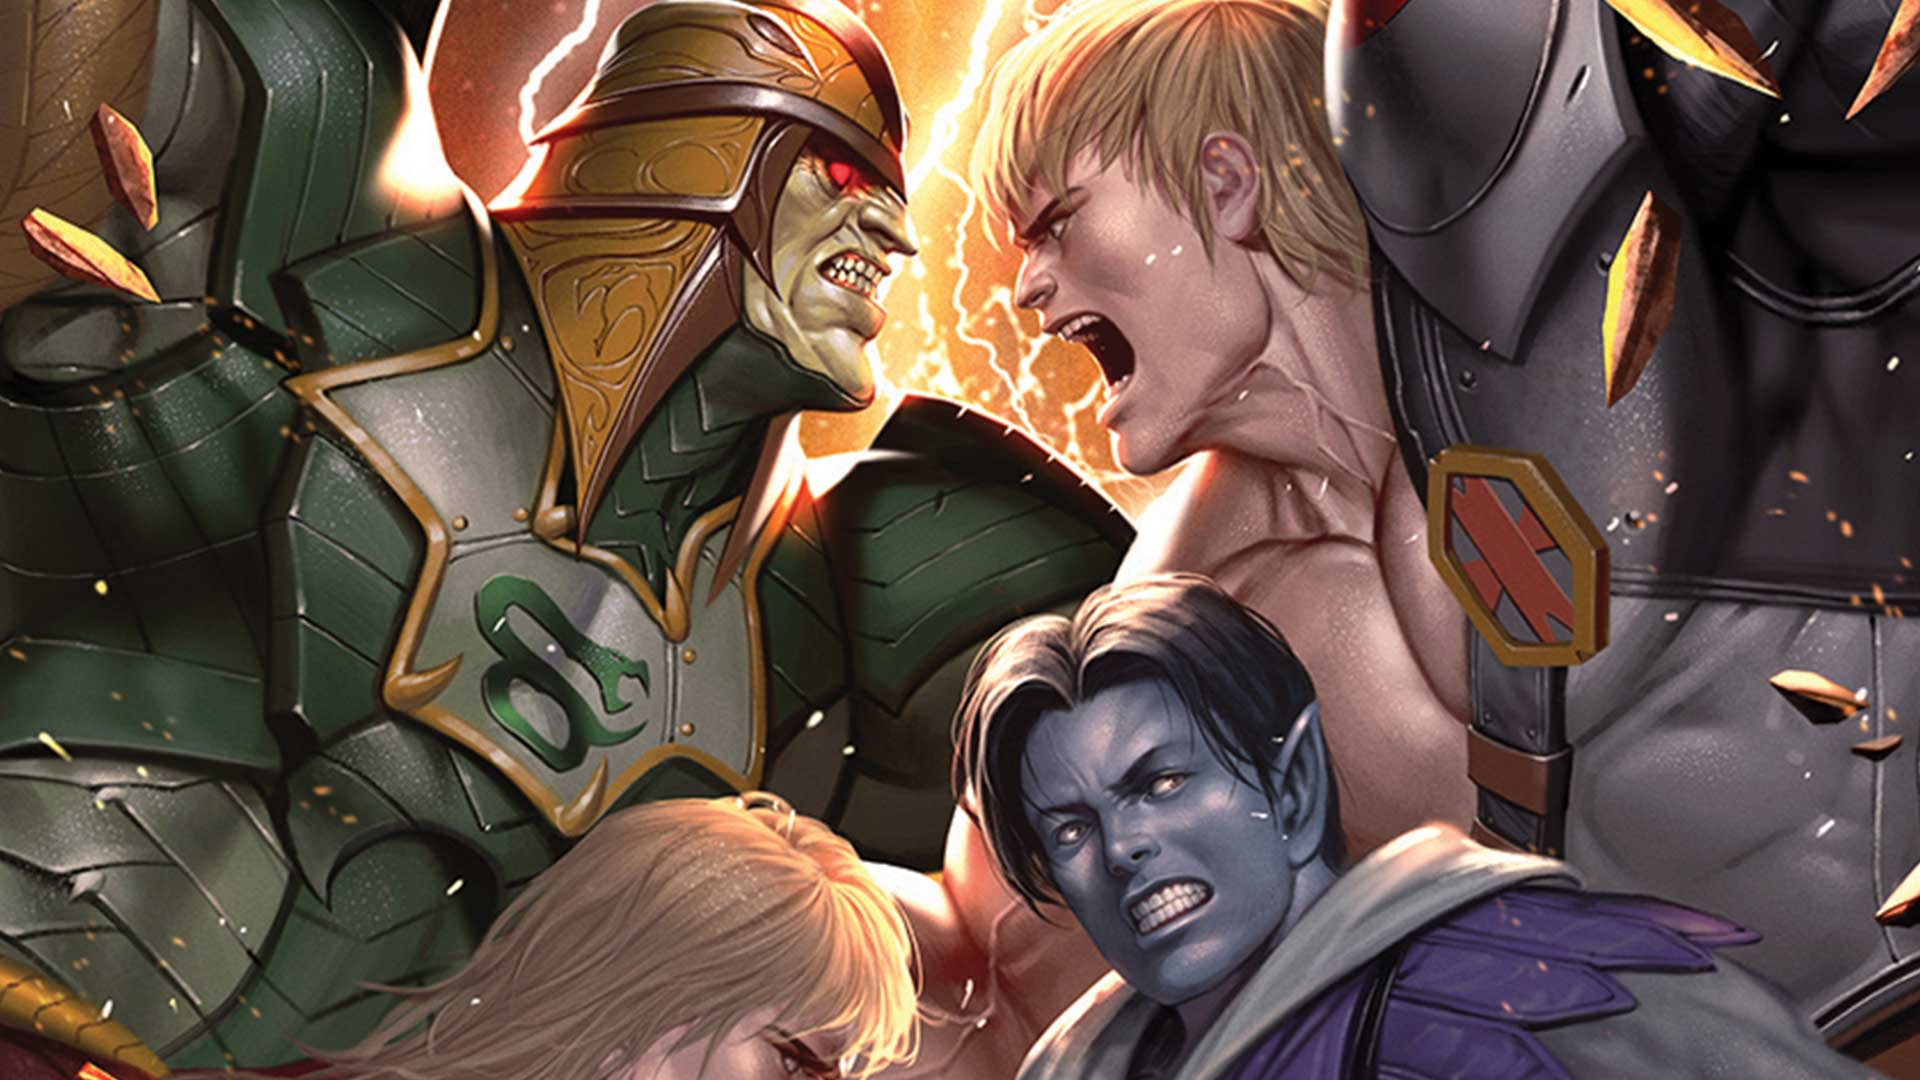 EXCLUSIVE PREVIEW: 'He-Man & the Masters of the Multiverse,' #3